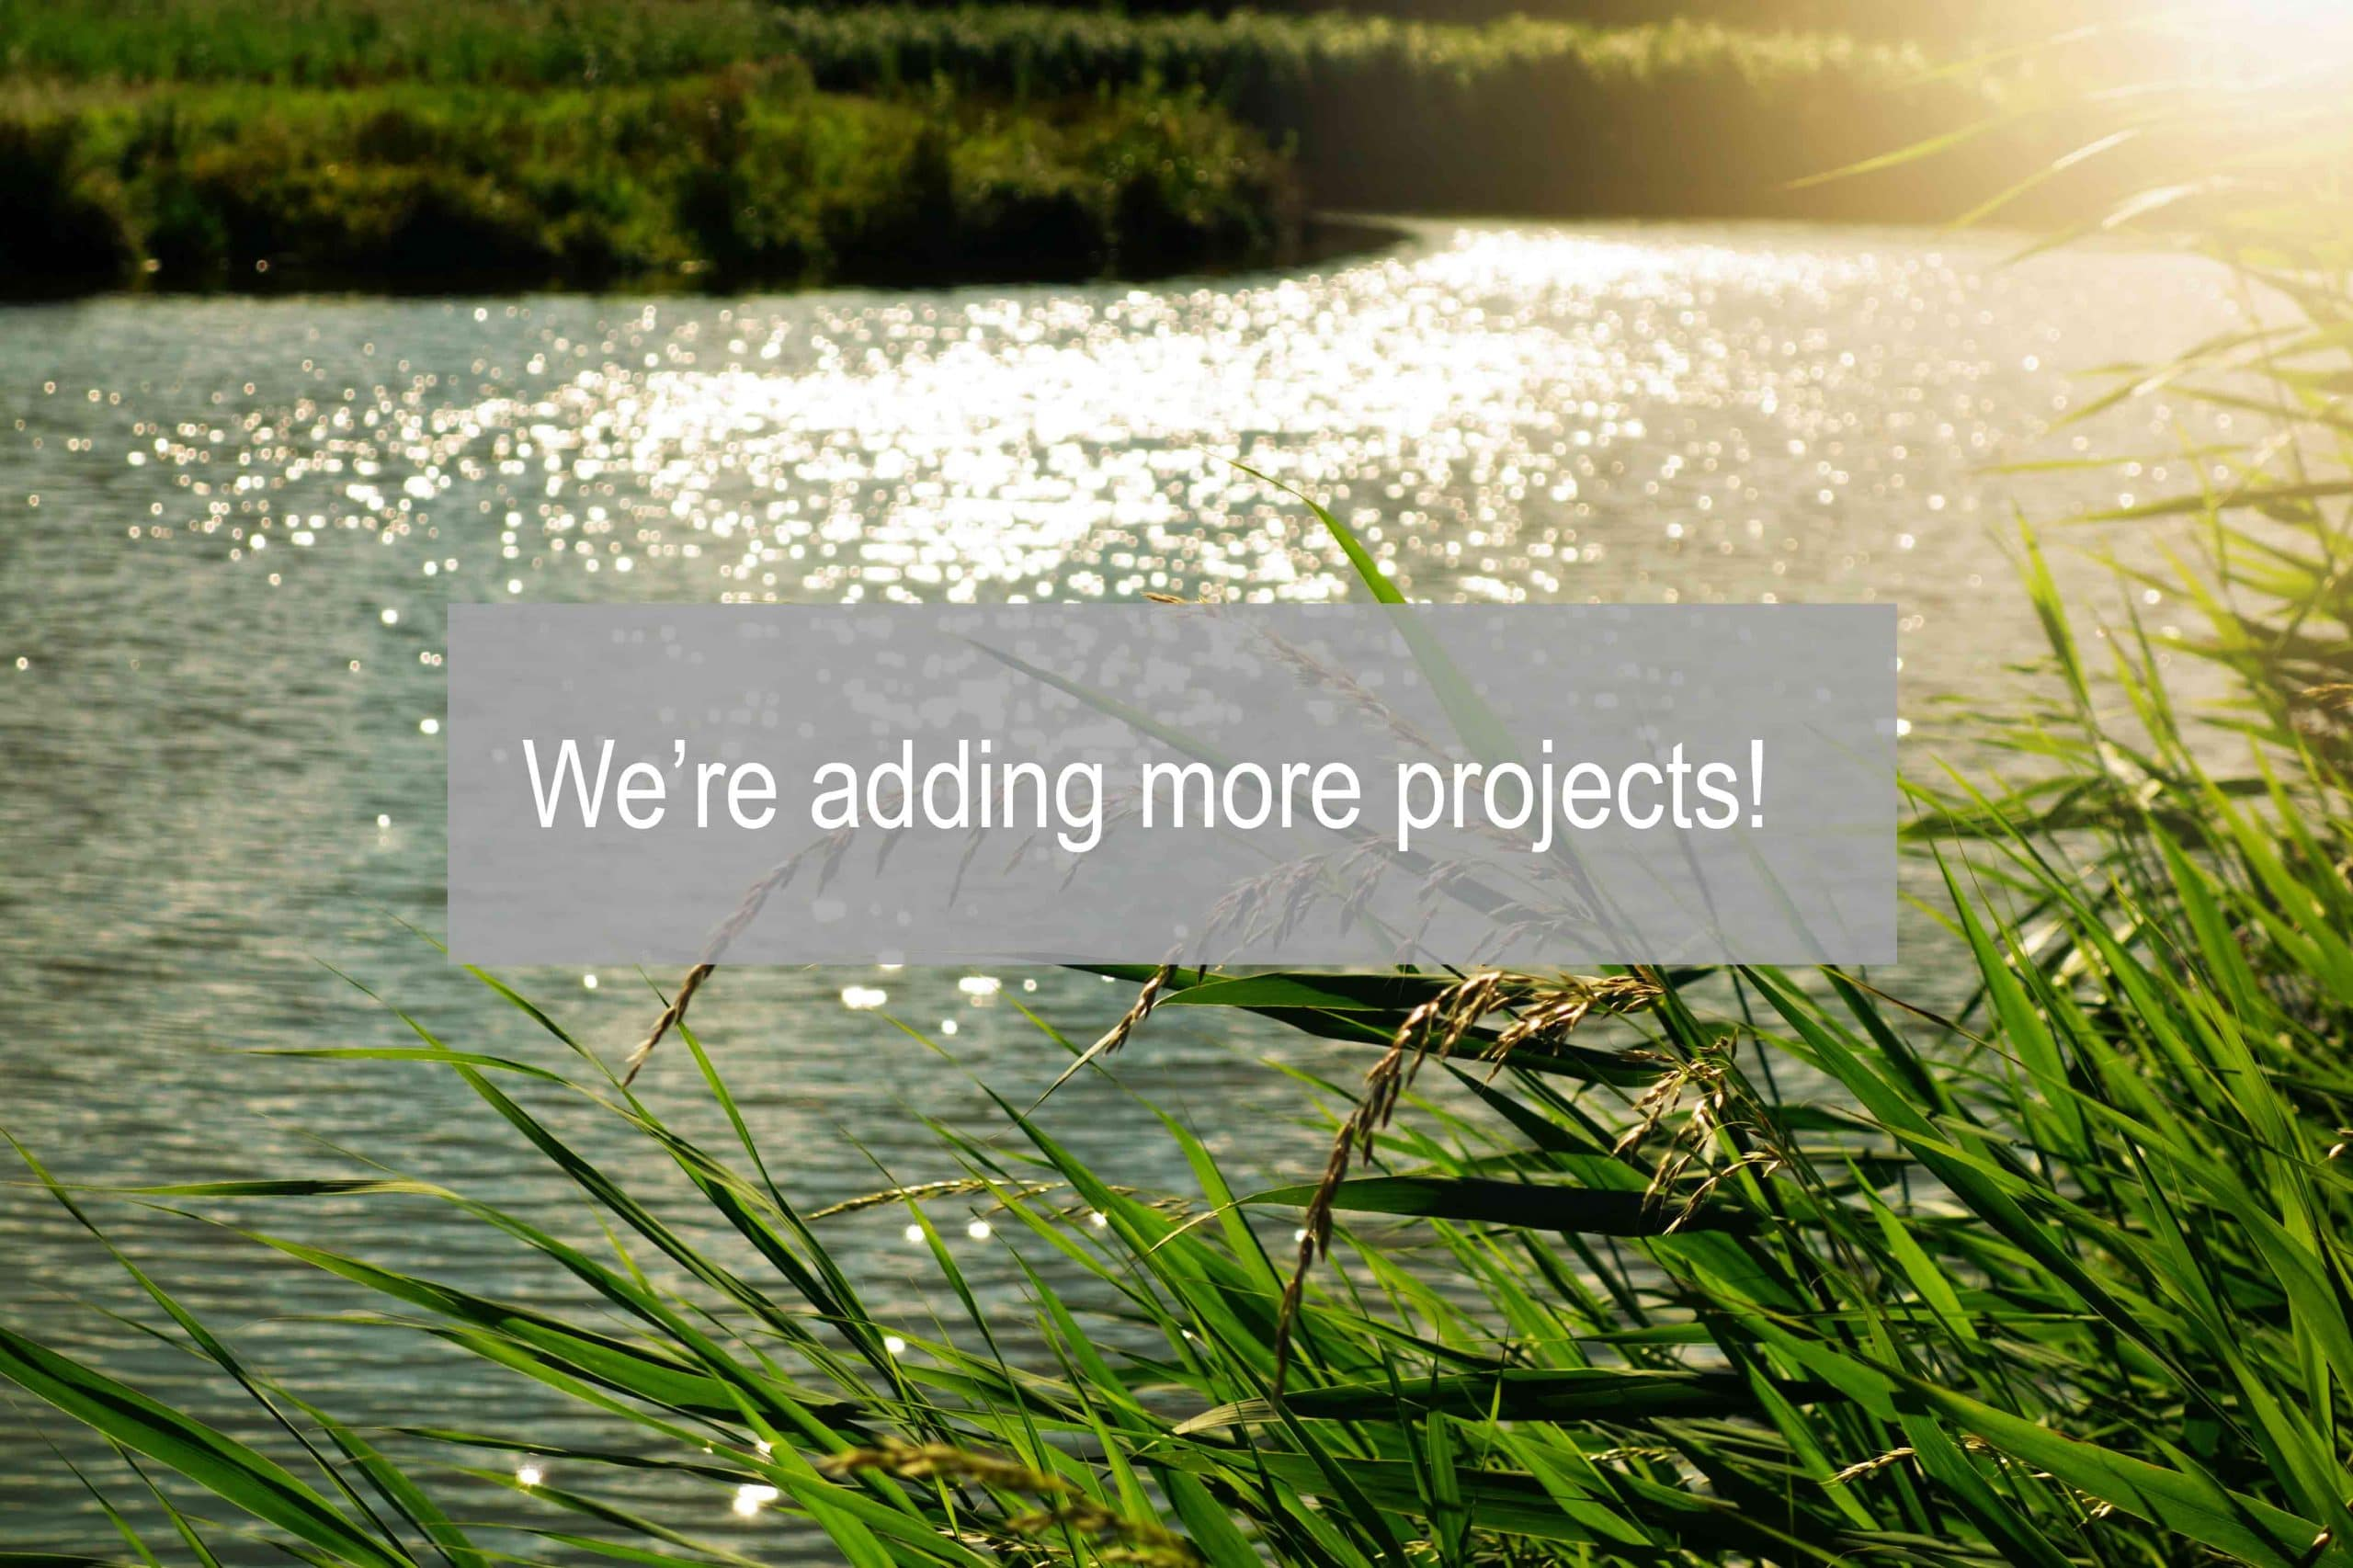 We're adding more projects!